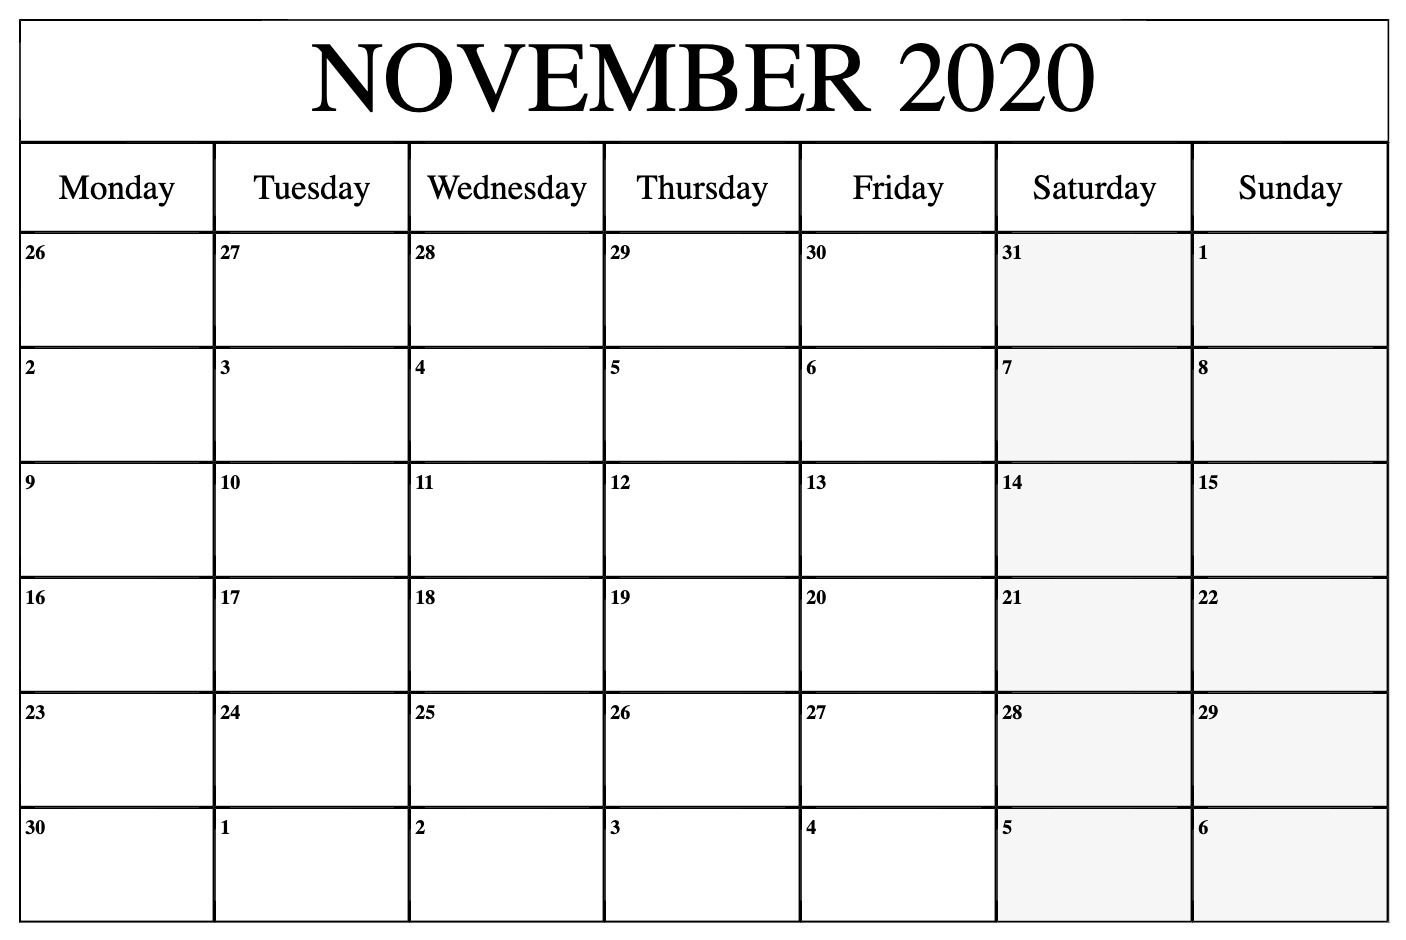 November 2020 Calendar Pdf, Word, Excel Template Calendear That I Can Edit With Holidays On It